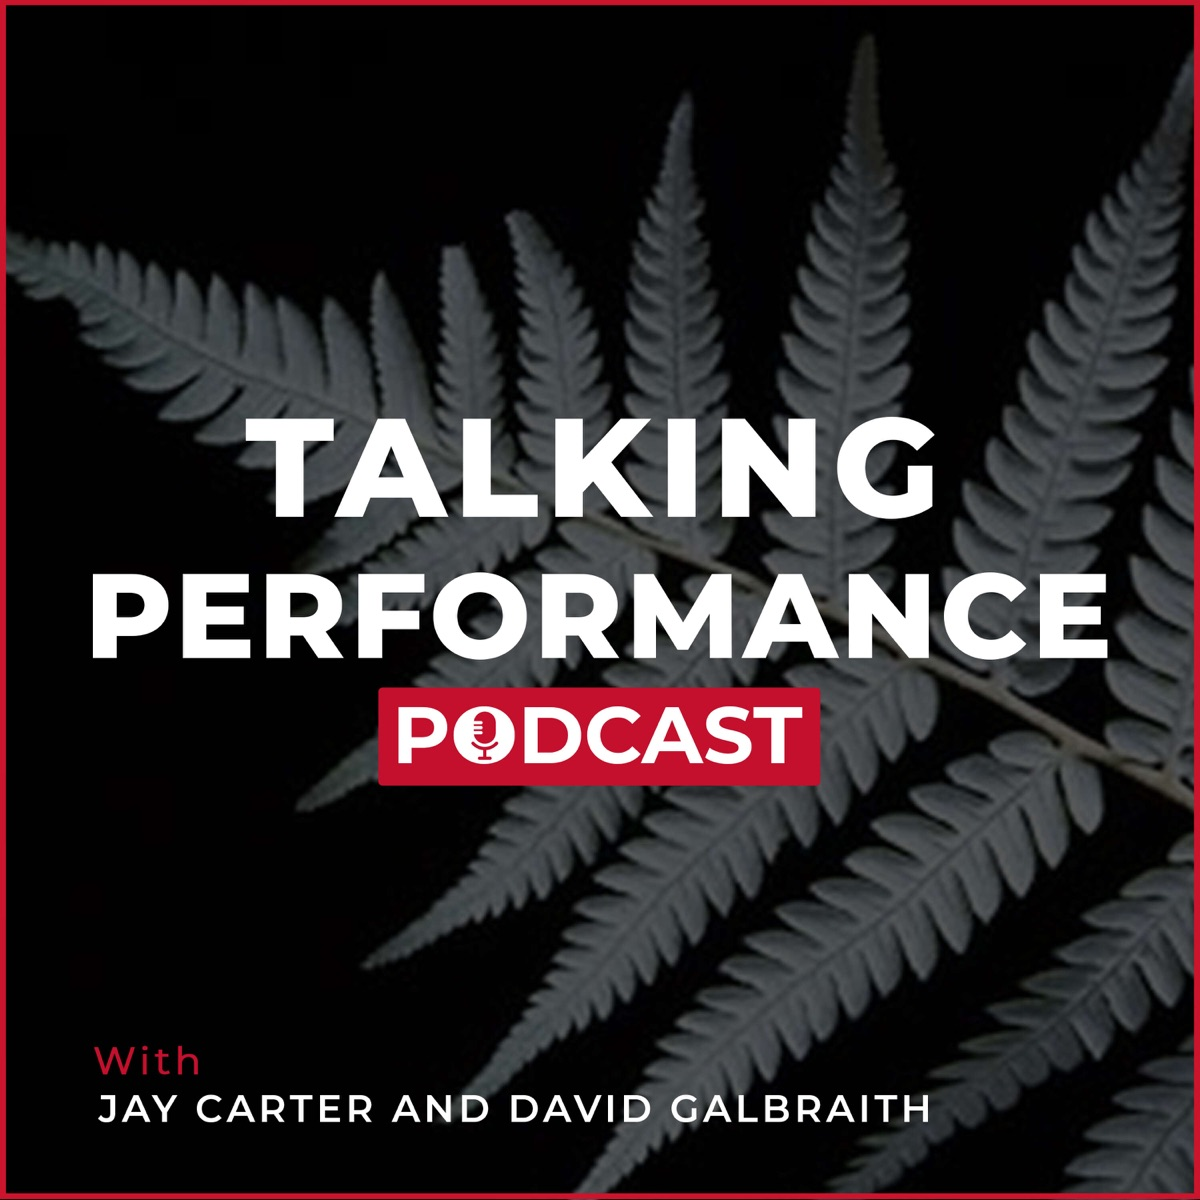 Talking Performance Episode 44 with Special Guest Maia Westrupp